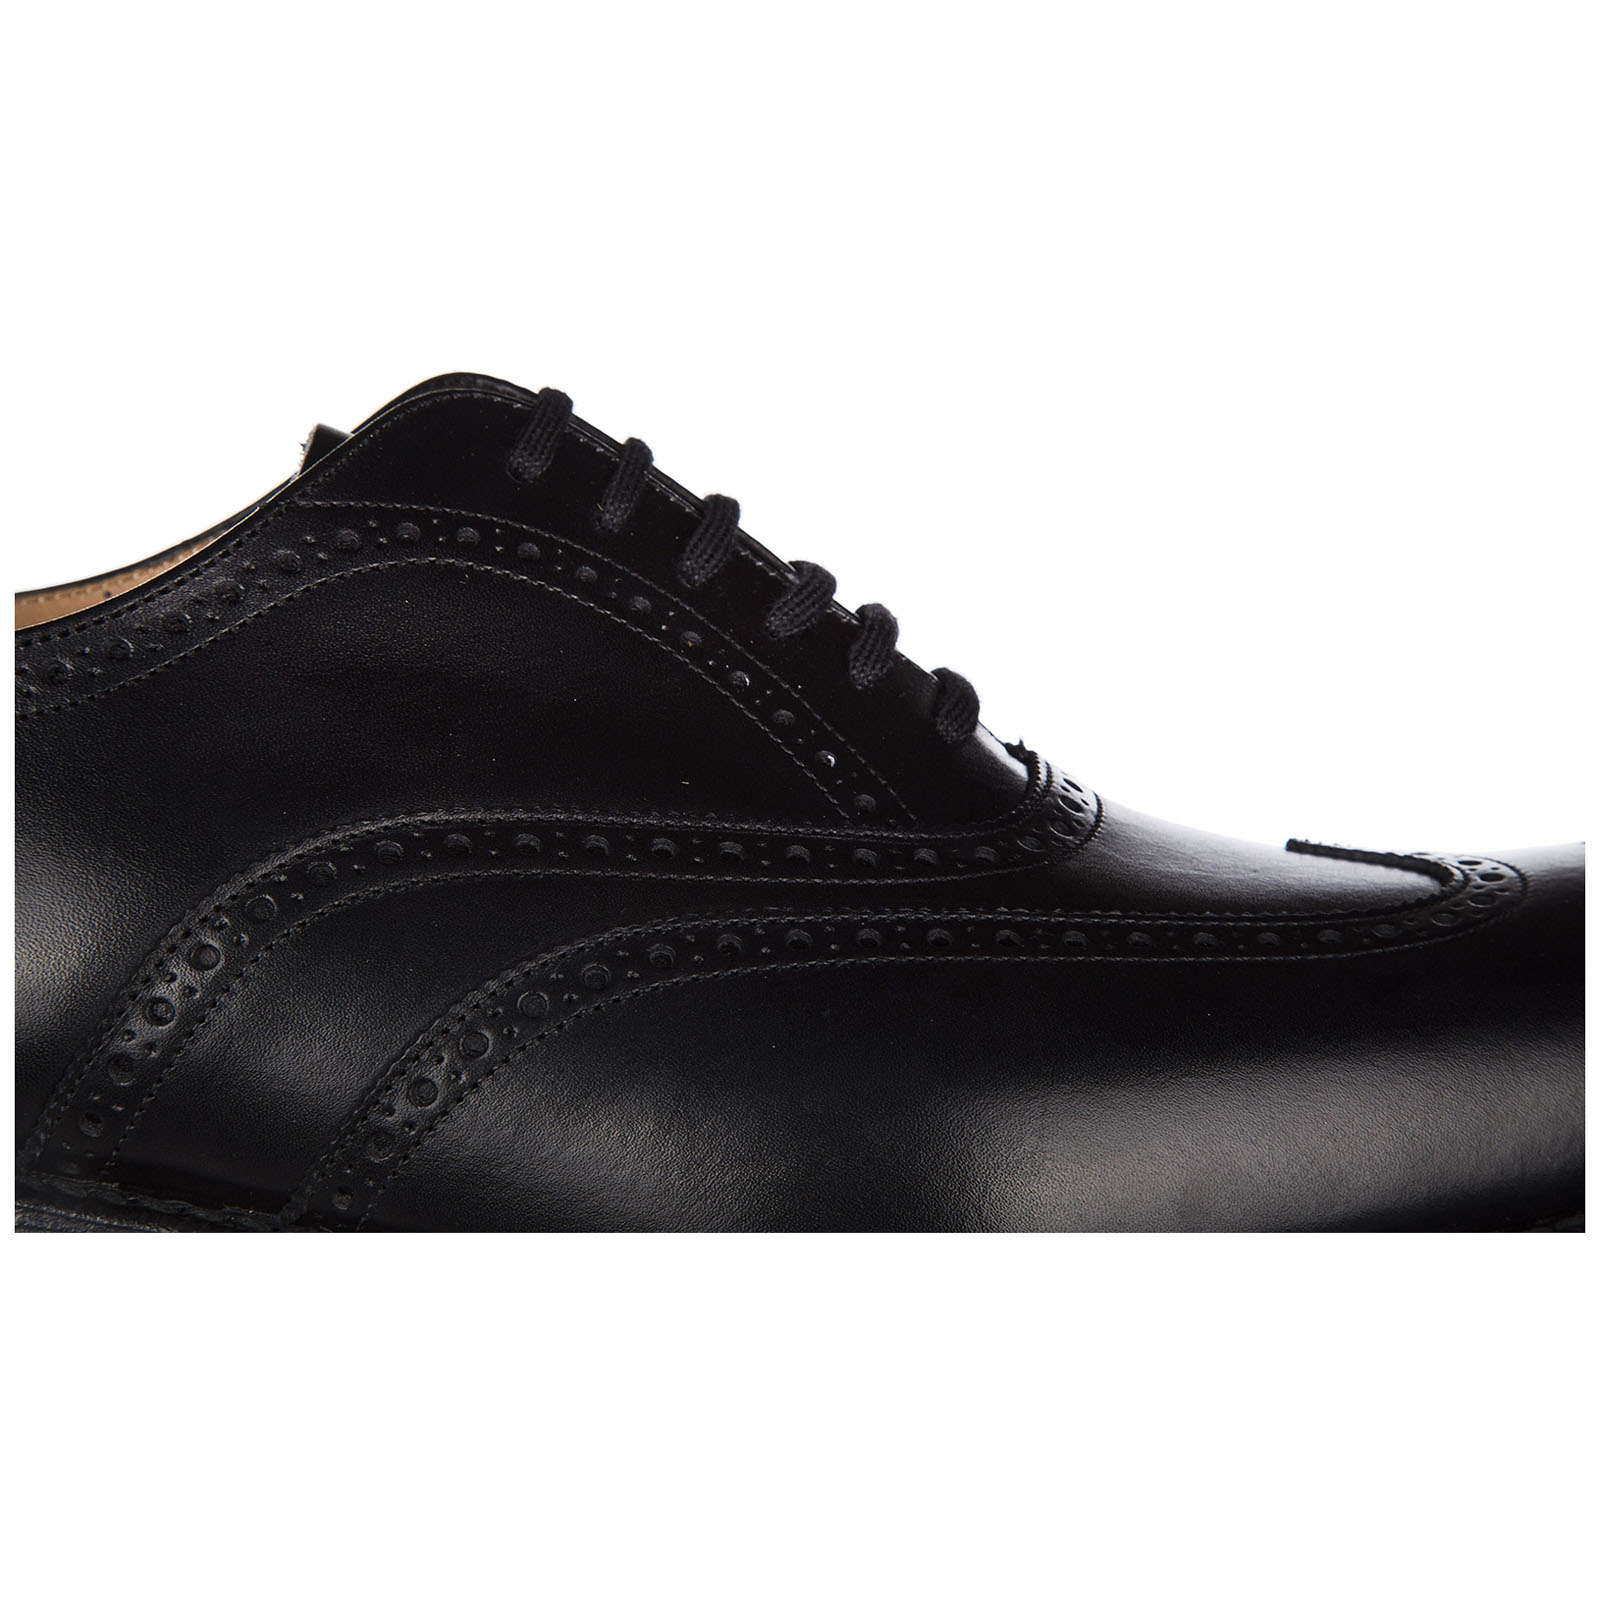 Men's classic leather lace up laced formal shoes berlin brogue